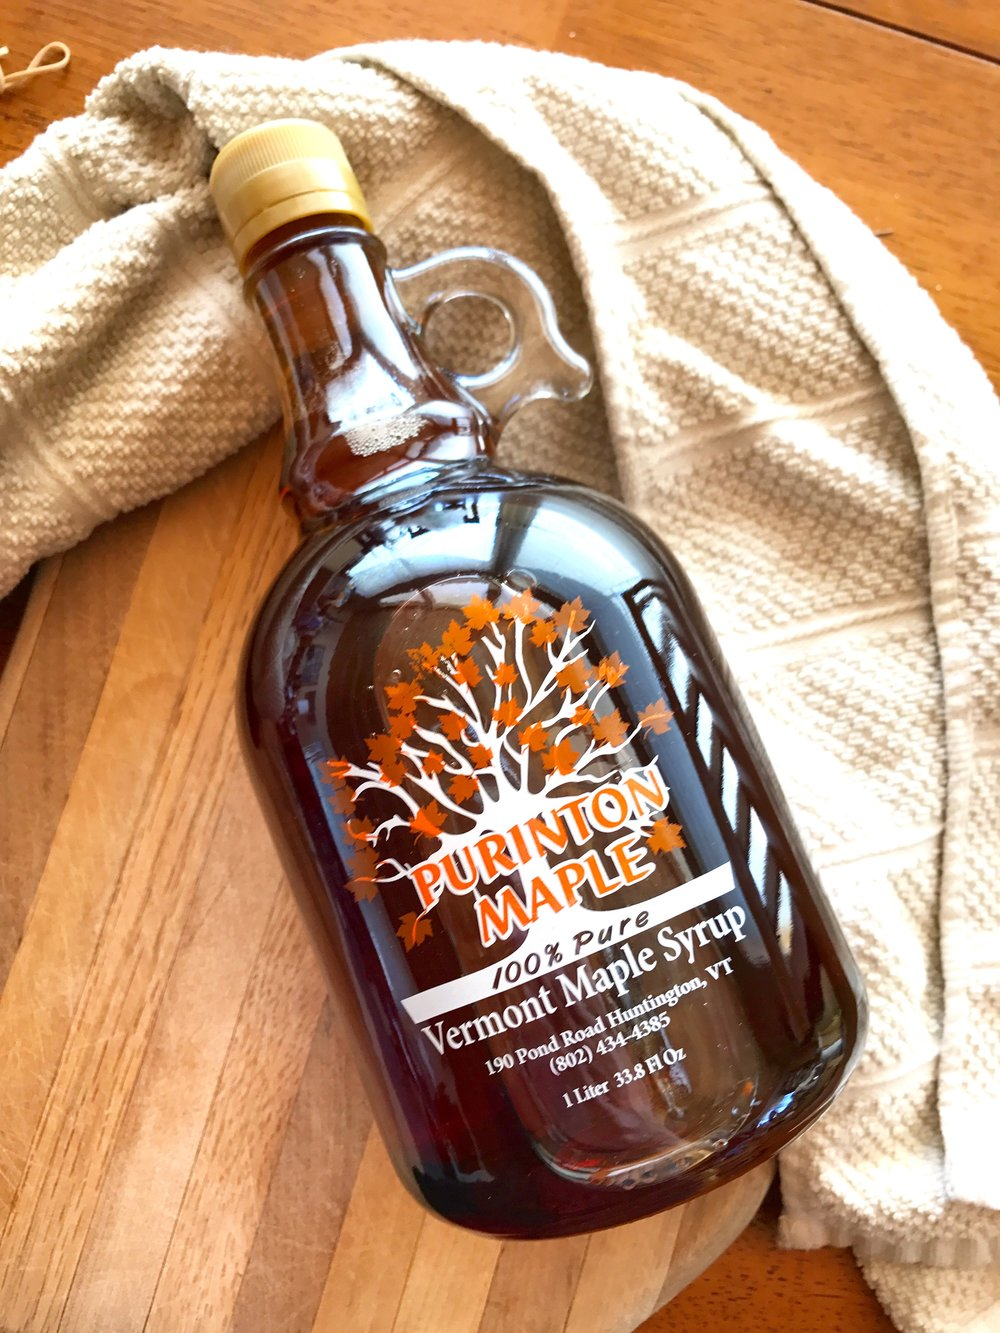 Shop Purinton Maple Syrup 1 Liter for $19.99. Two bottles for $38.00 on  Treatmo iOS App  - convenience shopping for local natural food.